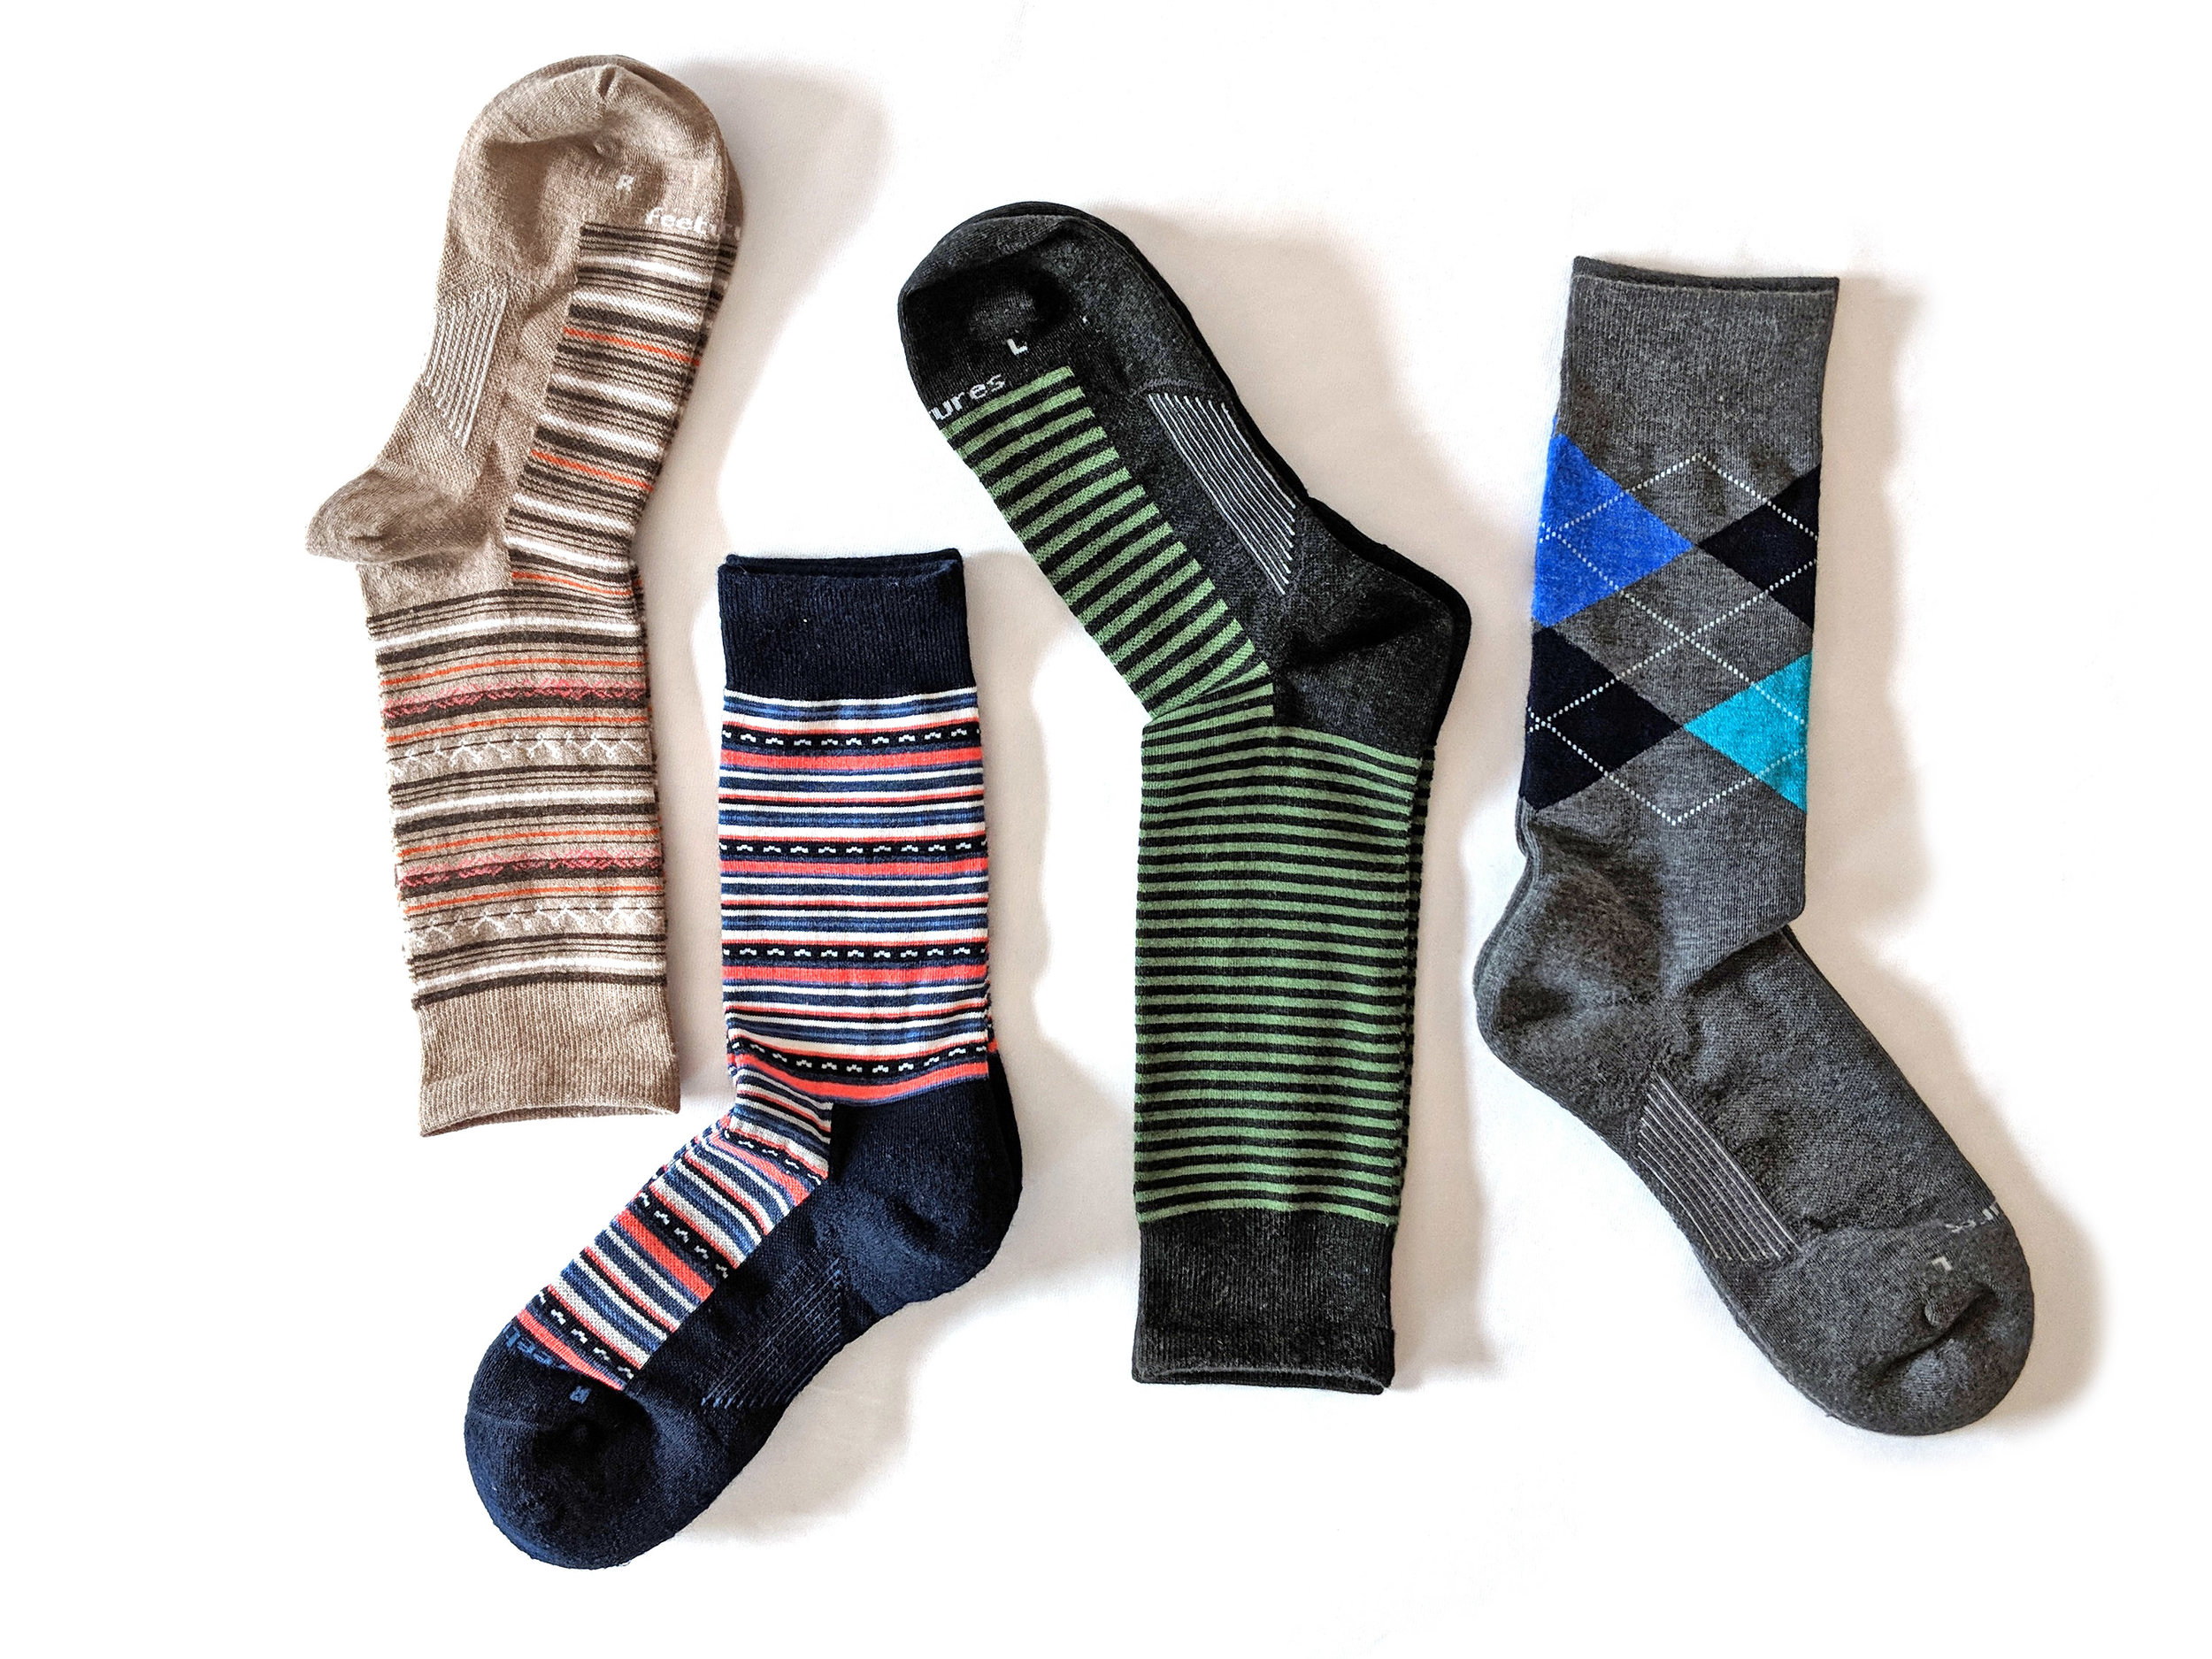 Flat lay photo of Feetures socks - Photo Credit: The Sock Review